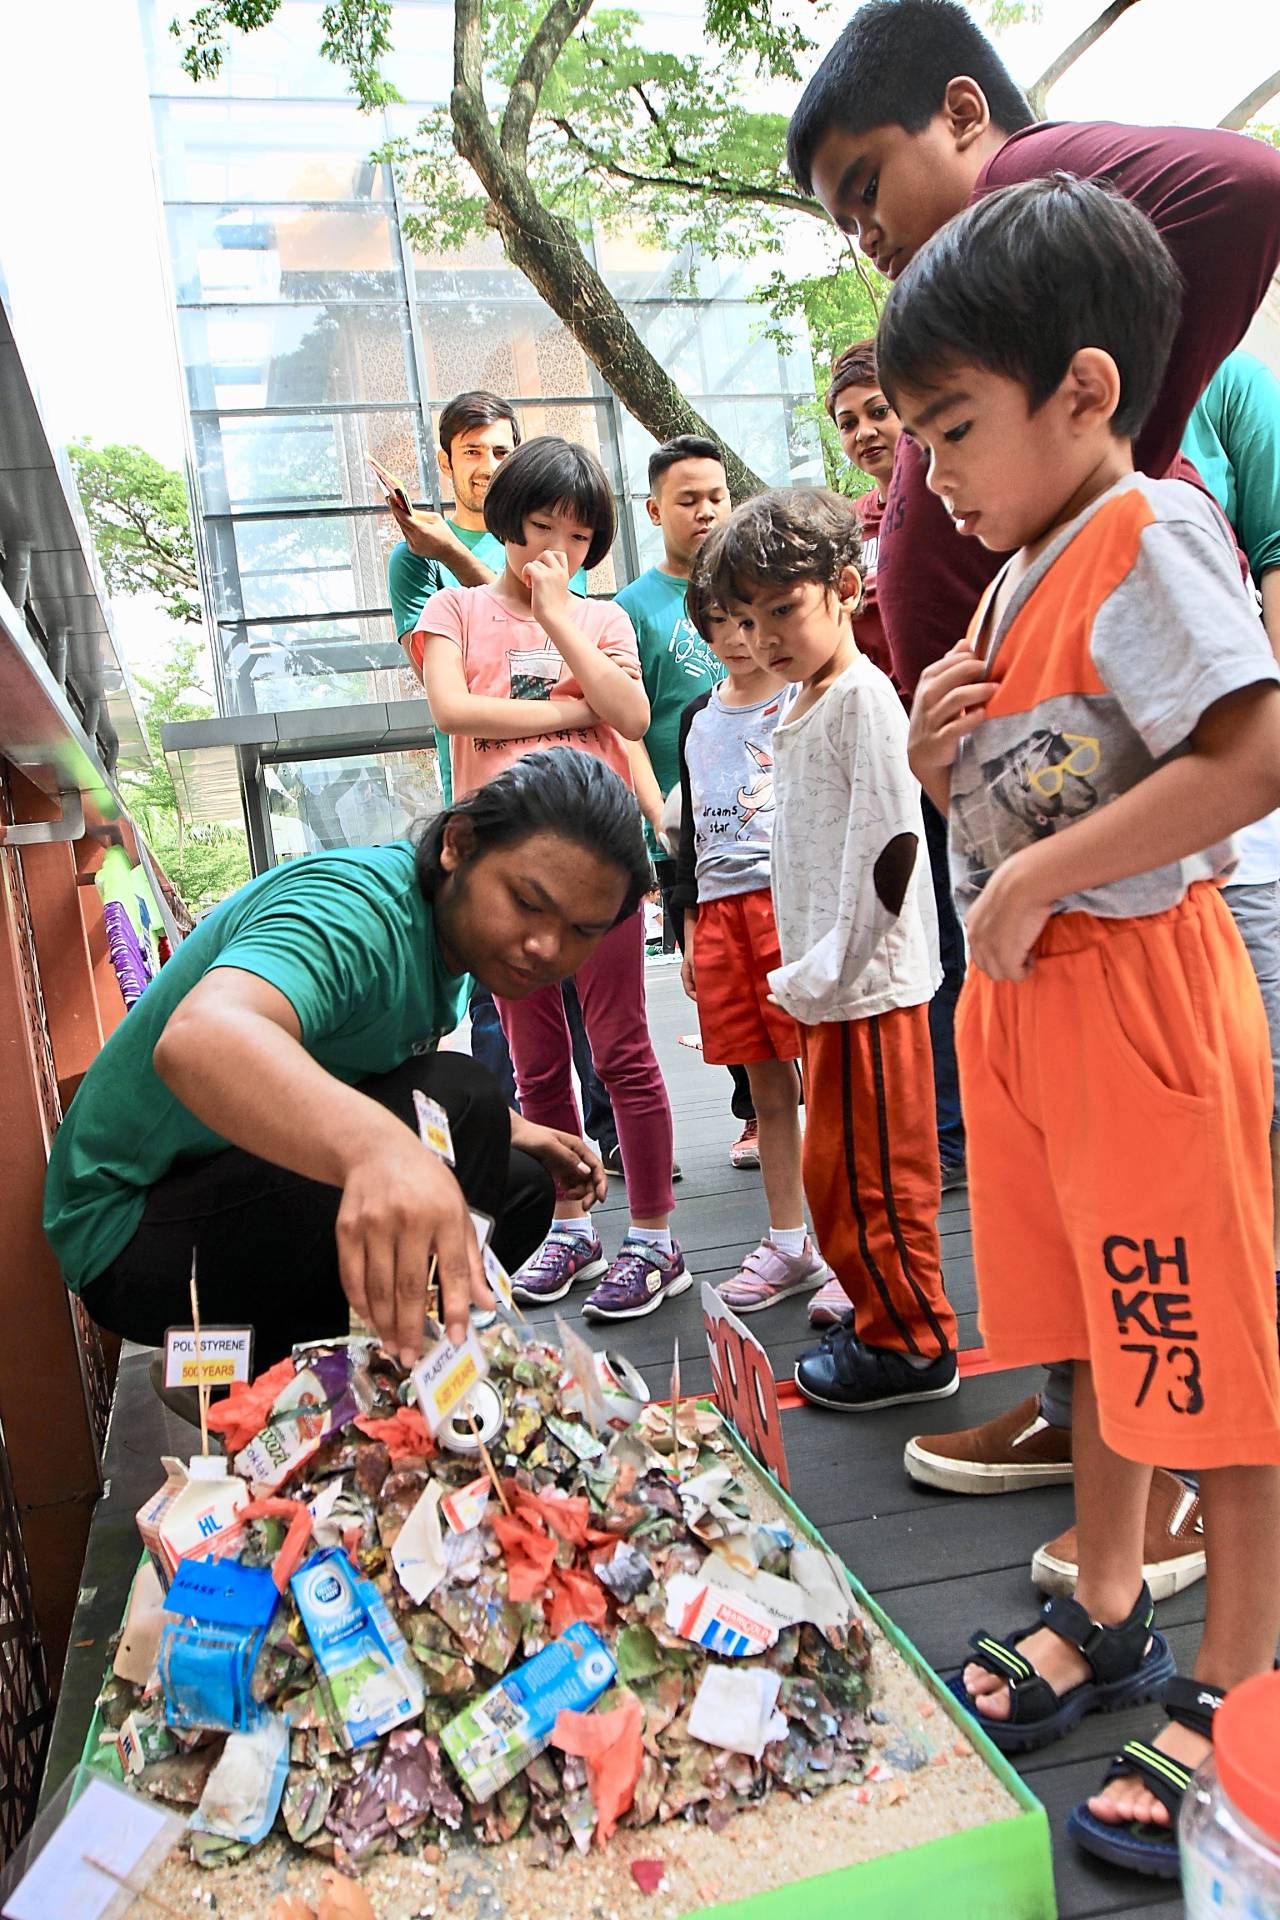 Muhammad Hafiz, 19, engaging with children at the exhibition of recycled products during the River of Life Public Outreach Programme Phase 5 in Kuala Lumpur.